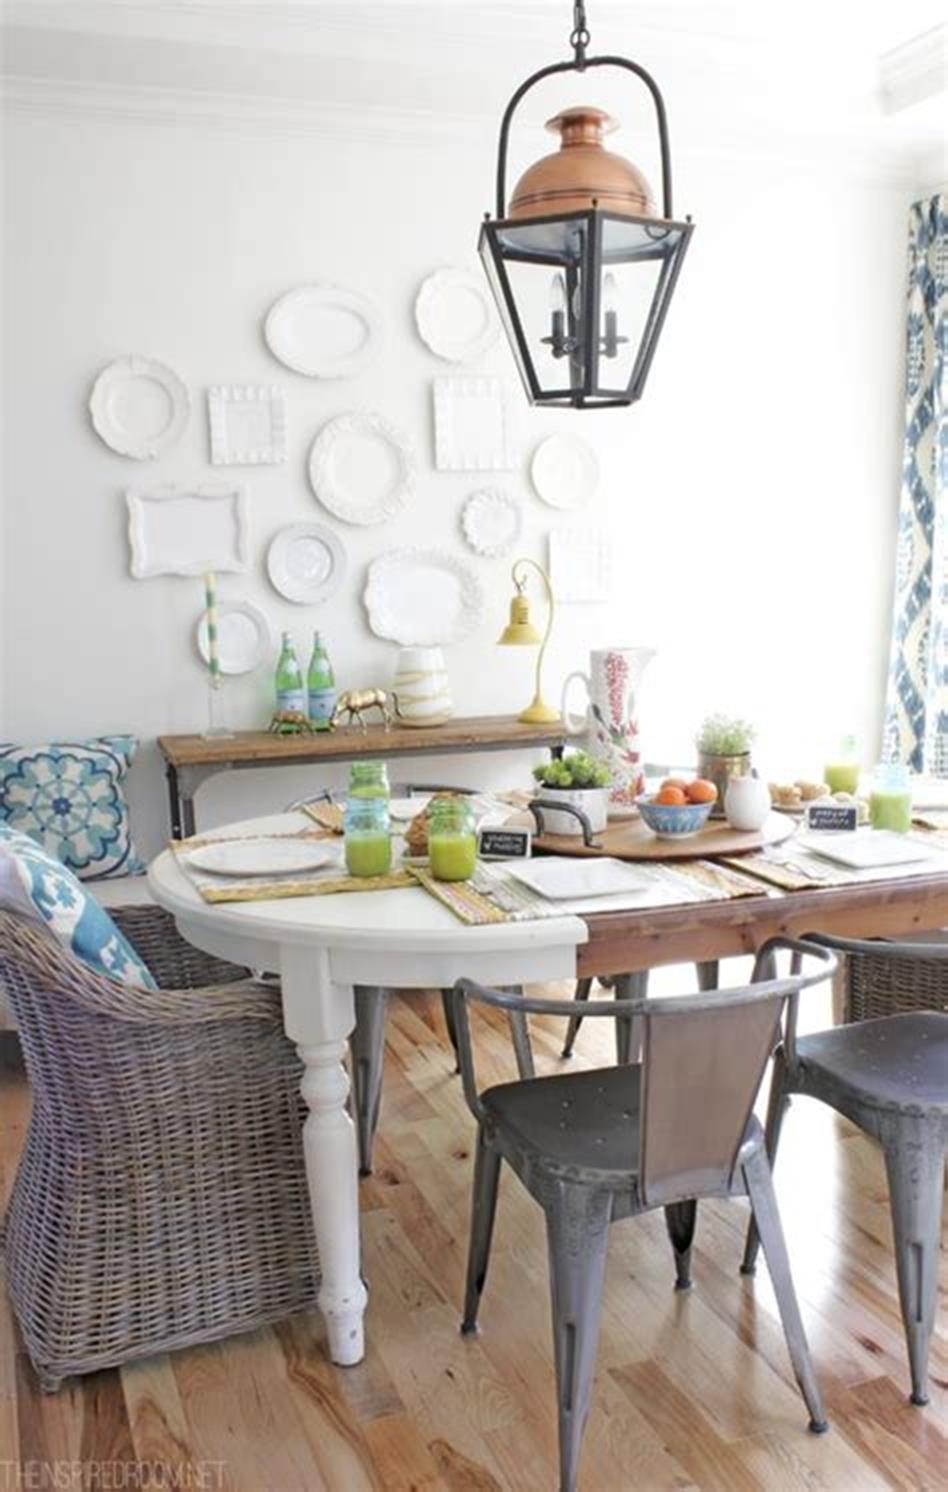 35 Stunning Spring Kitchen and Dining Room Decorating Ideas 2019 38